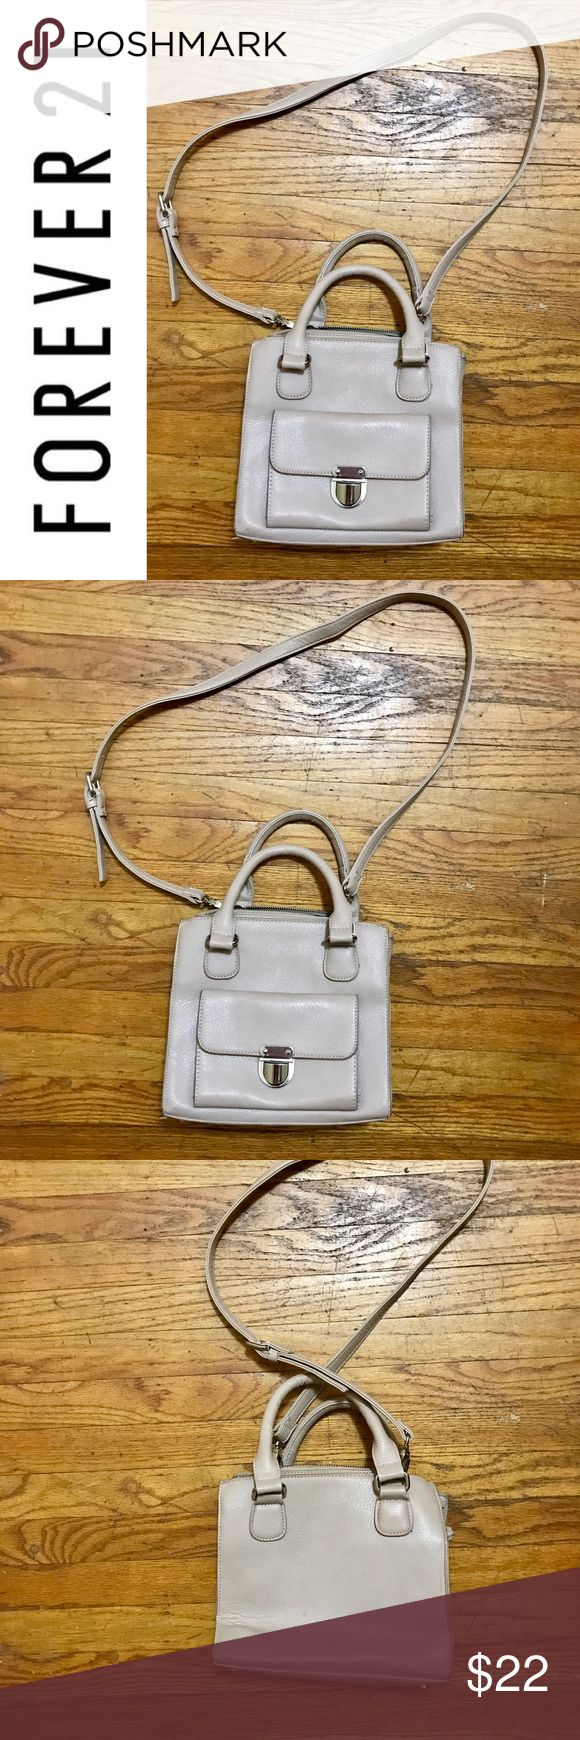 Super Cute Vegan Leather Bag Super cute and clean bag from Forever 21. Cross body strap is removable and can be used satchel style. Pretty soft cement/pale beige colored bag. Goes with anything and everything!! Forever 21 Bags Satchels